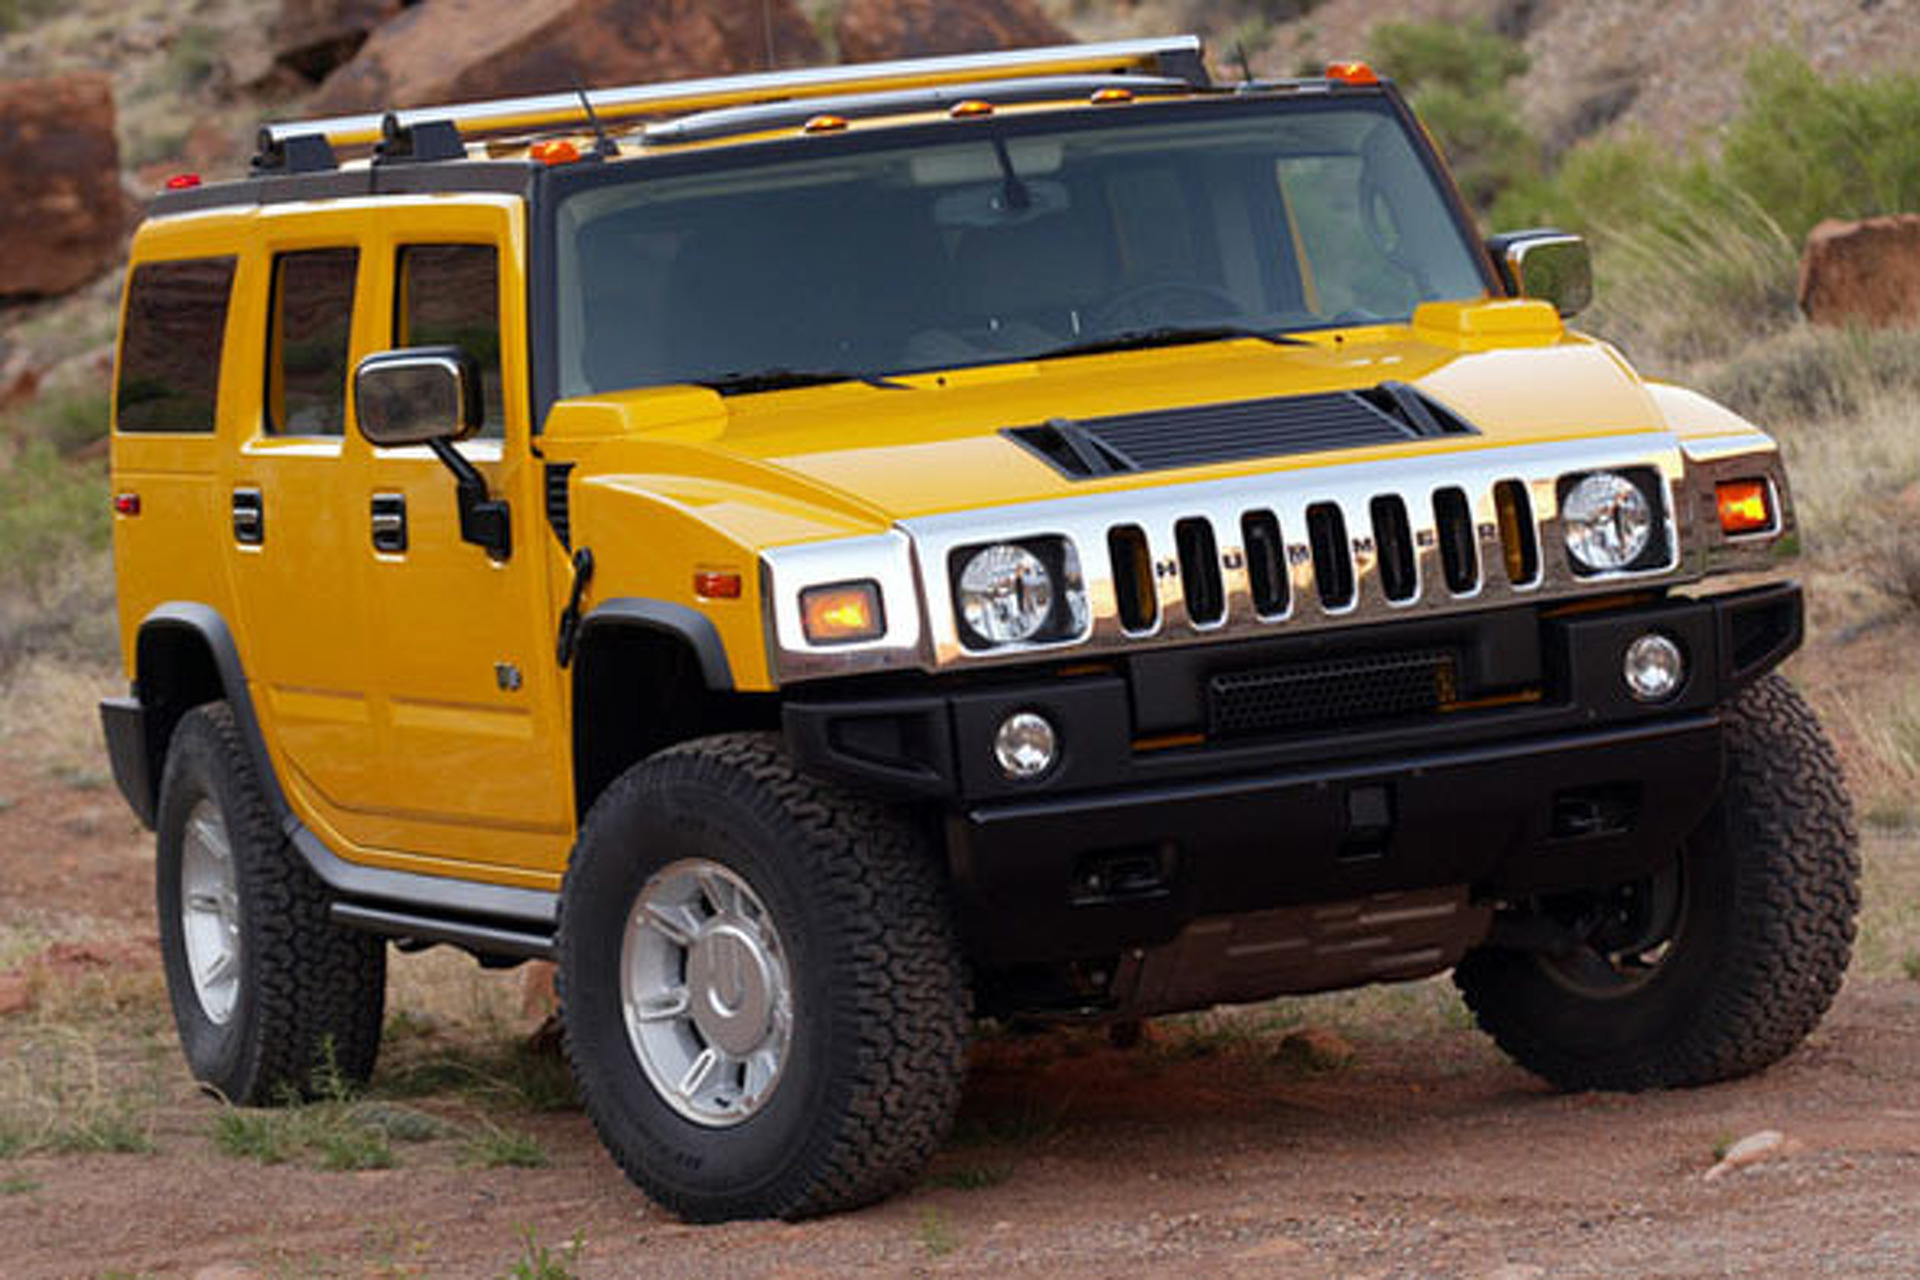 Guilty Pleasures: Cars We Hate to Admit We Actually Like